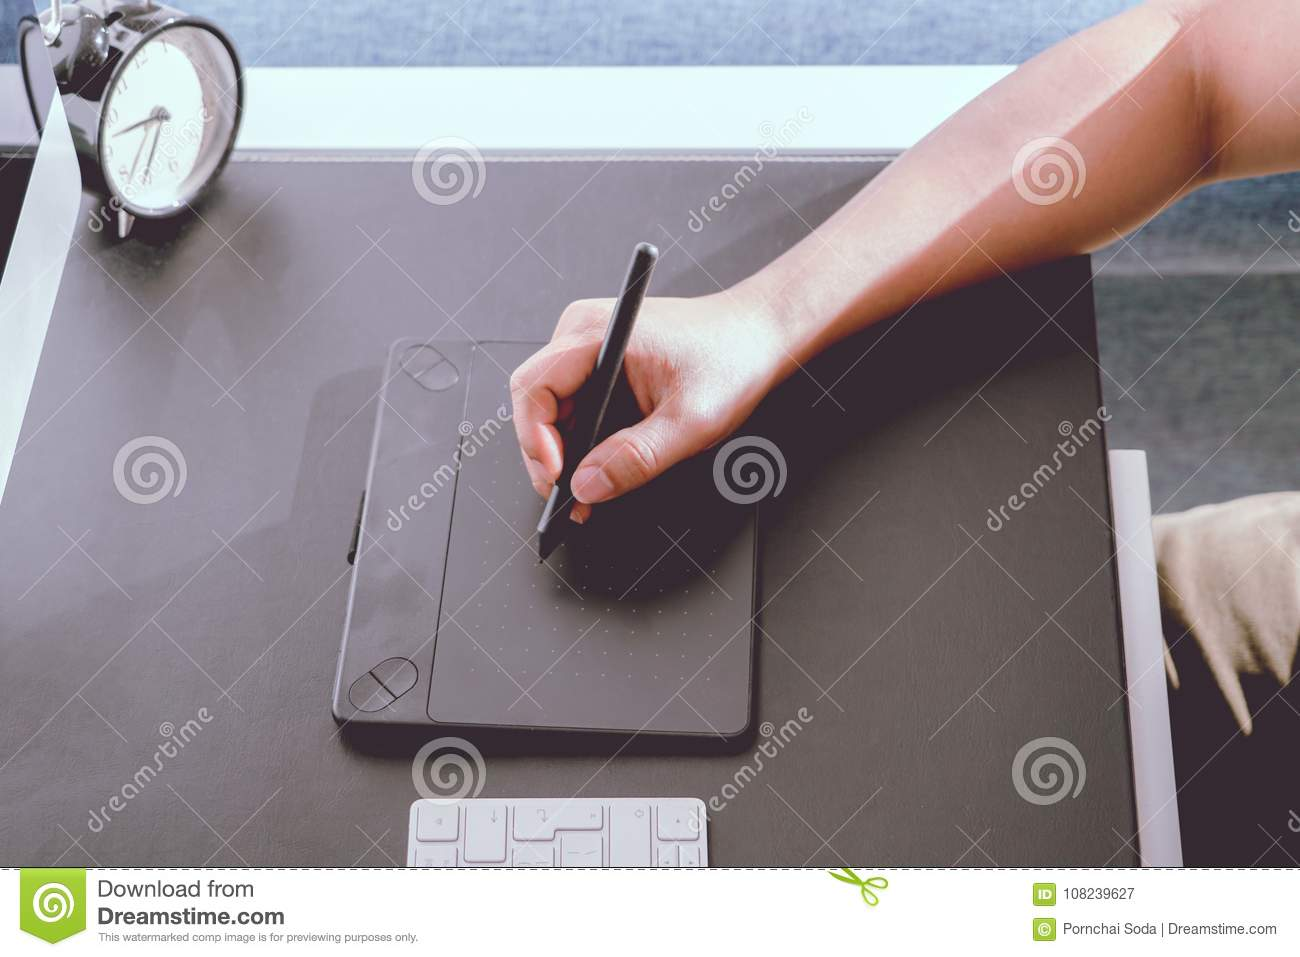 Focus on the busy graphic designer working on computer by digital pen mouse, noise filter apply